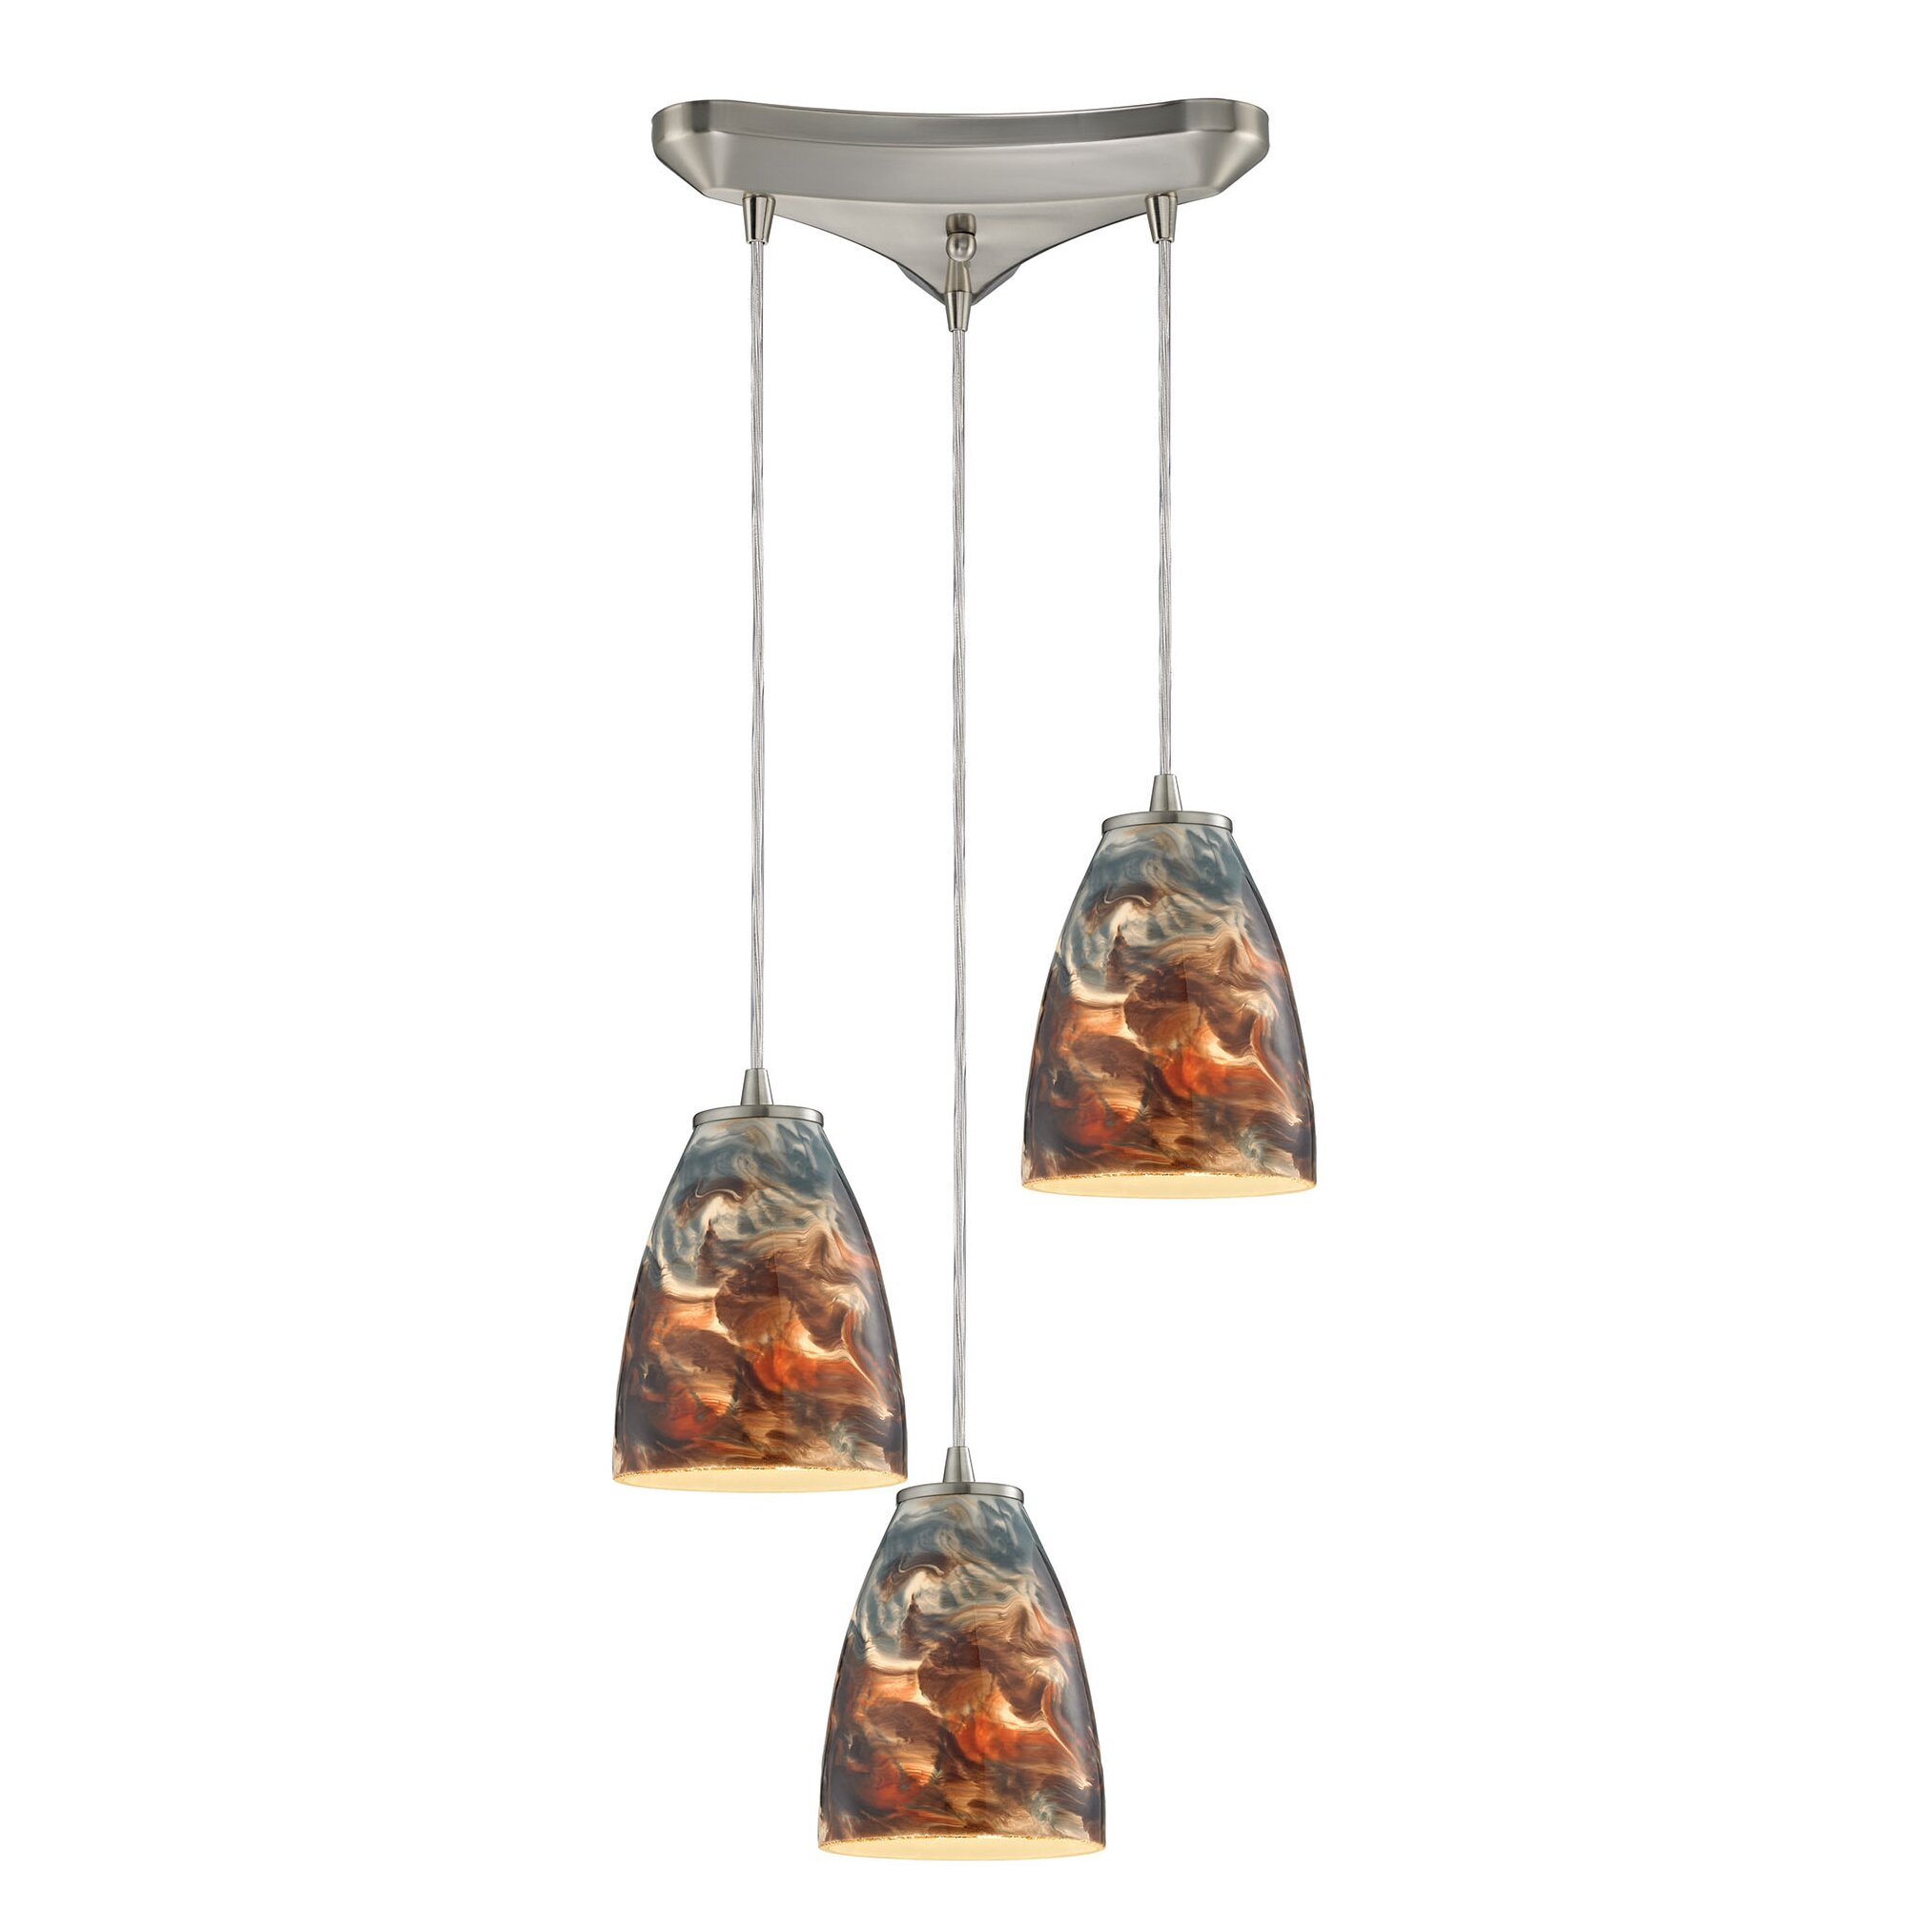 Abstractions 3 light kitchen island pendant wayfair for 3 light pendant island kitchen lighting